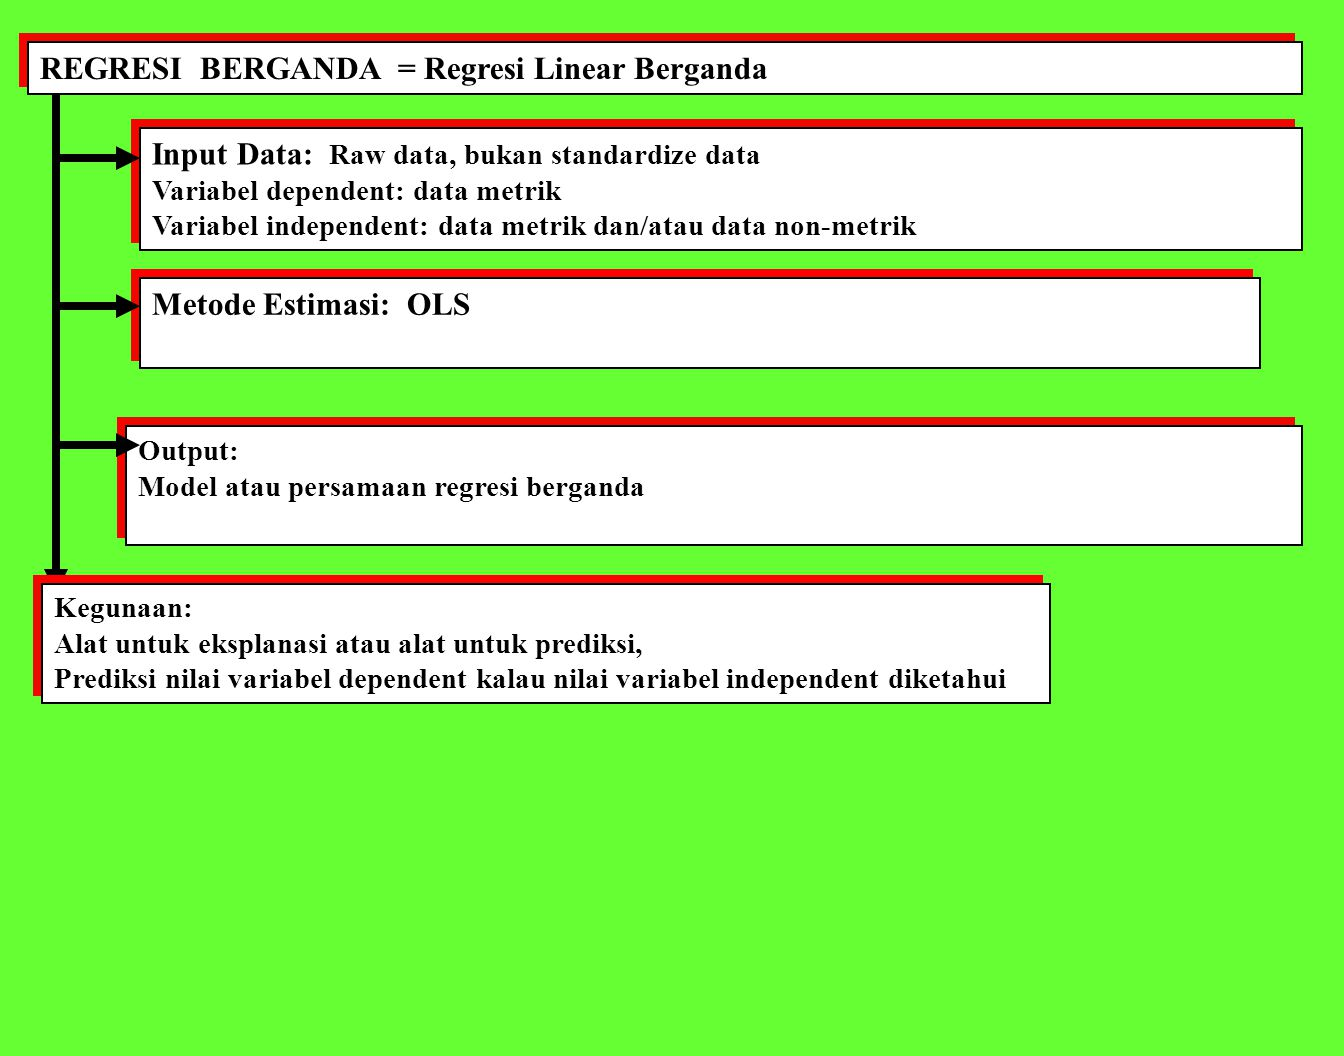 REGRESI BERGANDA = Regresi Linear Berganda